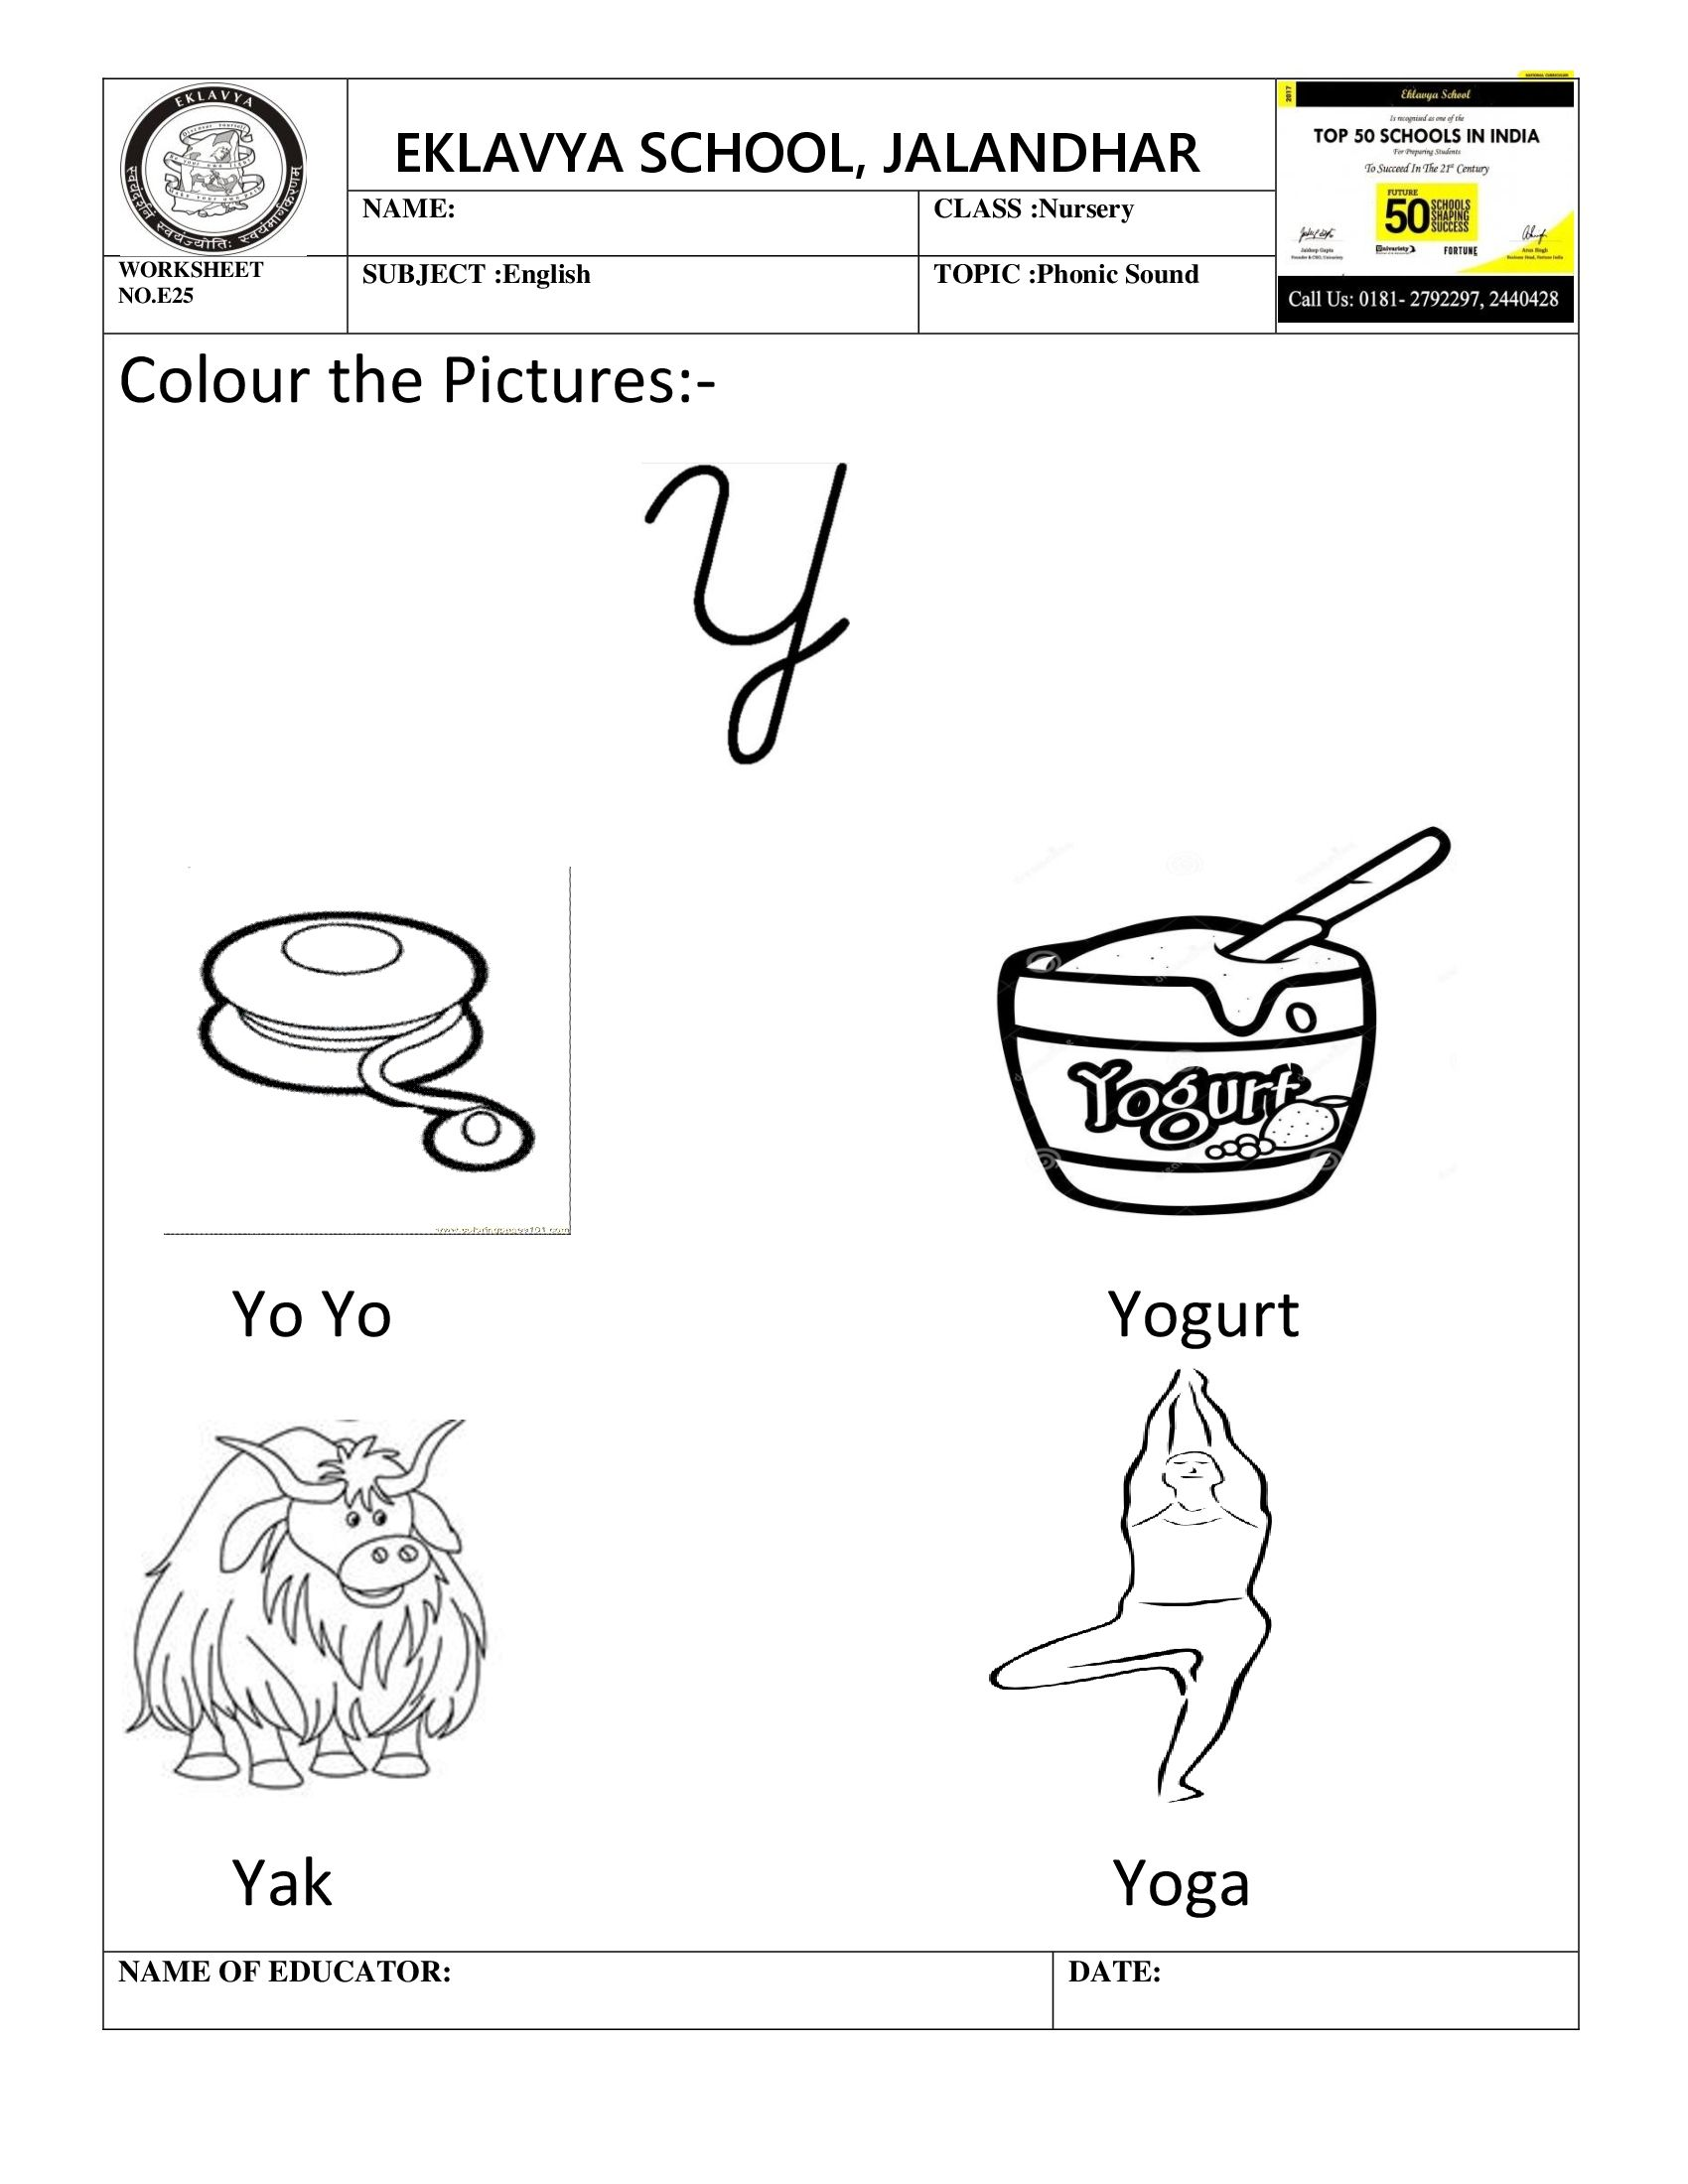 Worksheet On Phonic Sound Y